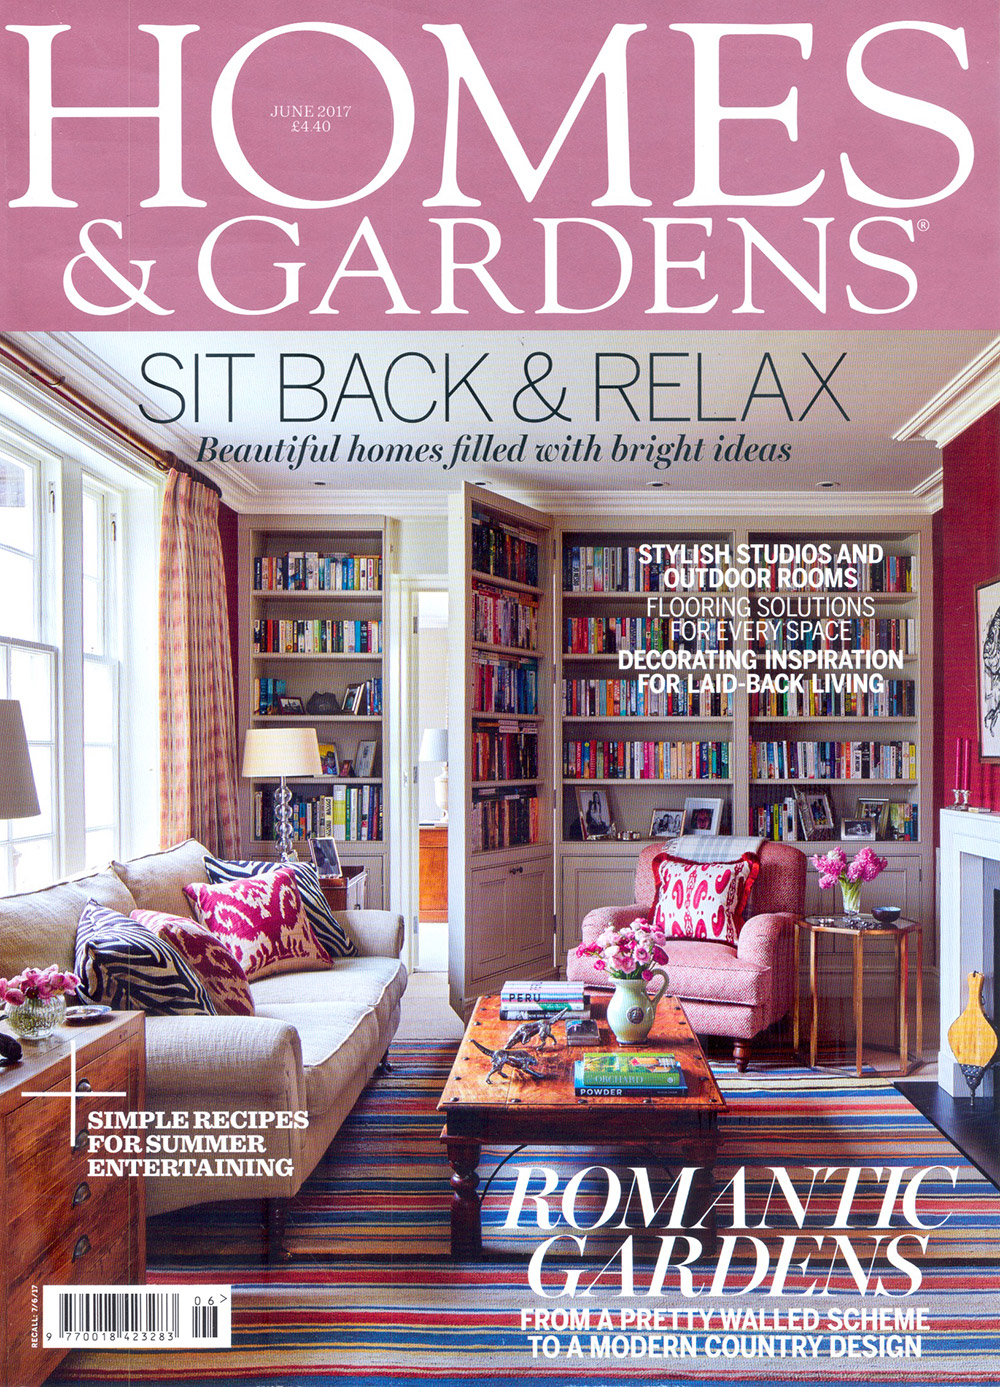 home-and-gardens-oct-2017-1